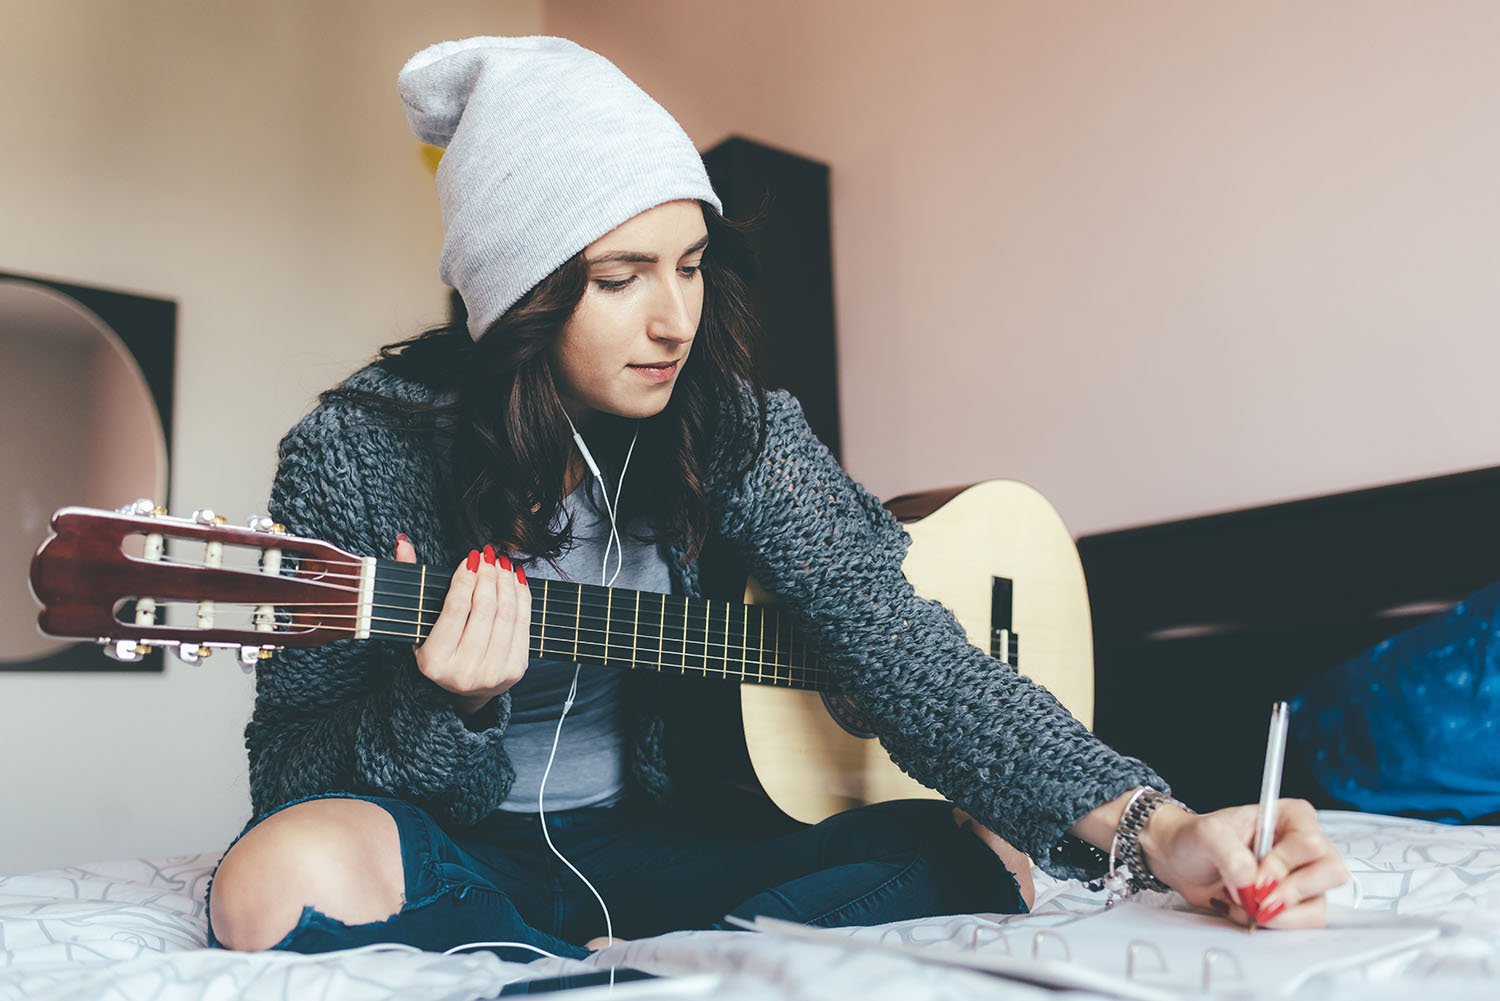 Songwriting lessons rock at Greenwich Arts Academy